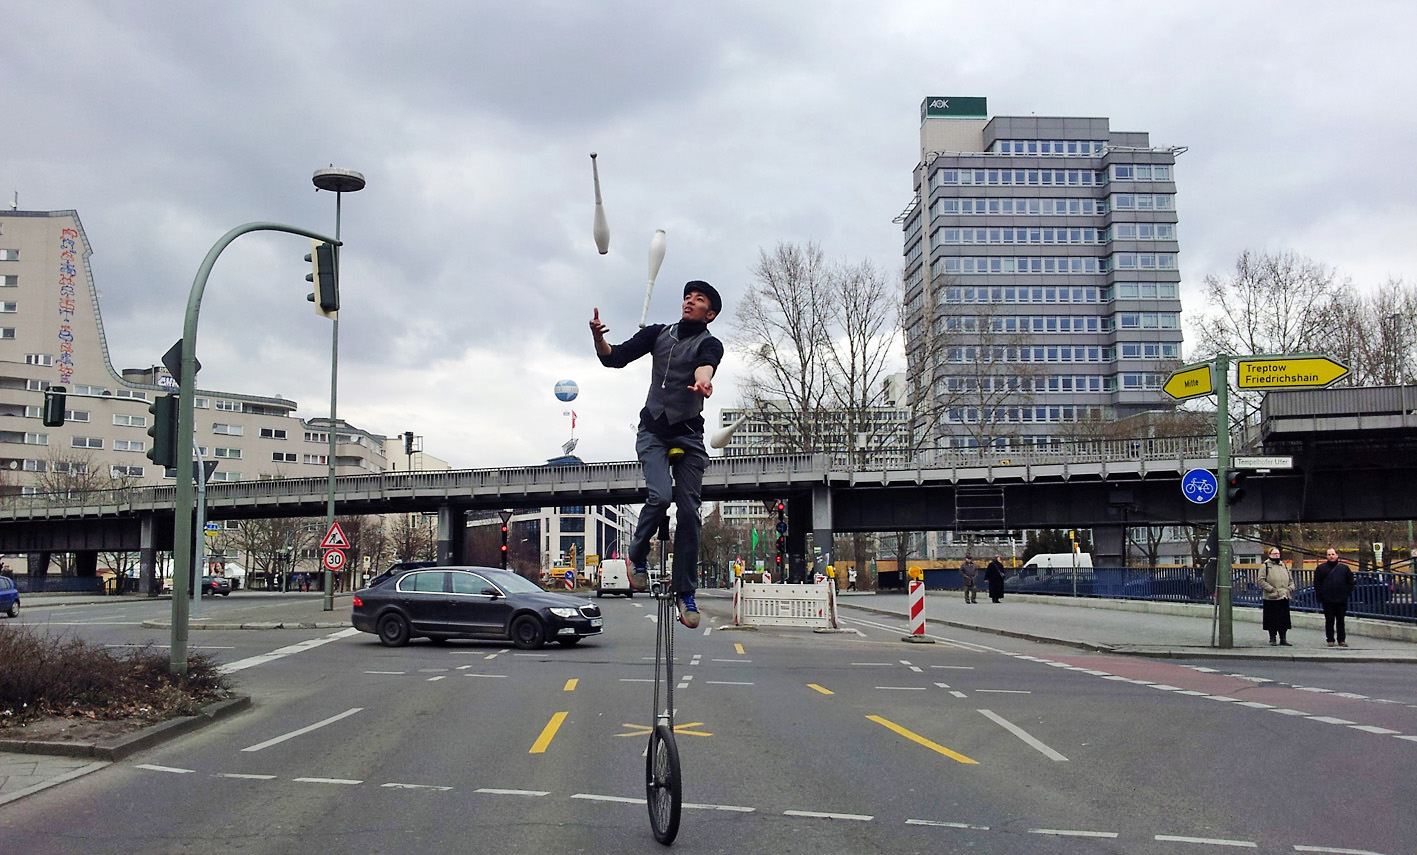 photo of a young man in Berlin who is juggling three pins while sitting on a unicycle